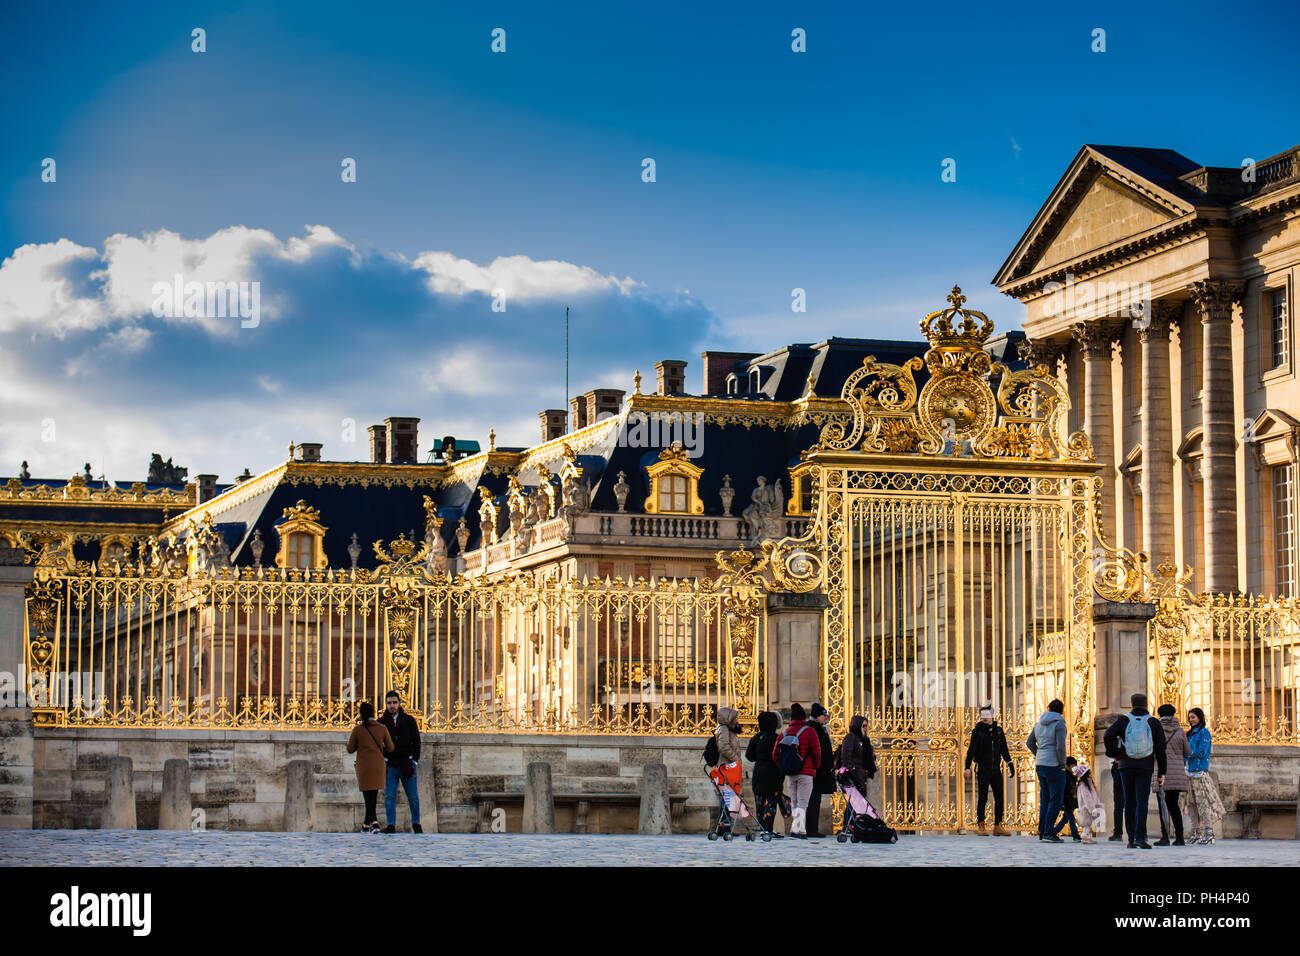 The Versailles Palace in a freezing winter day just before spring - Stock Image